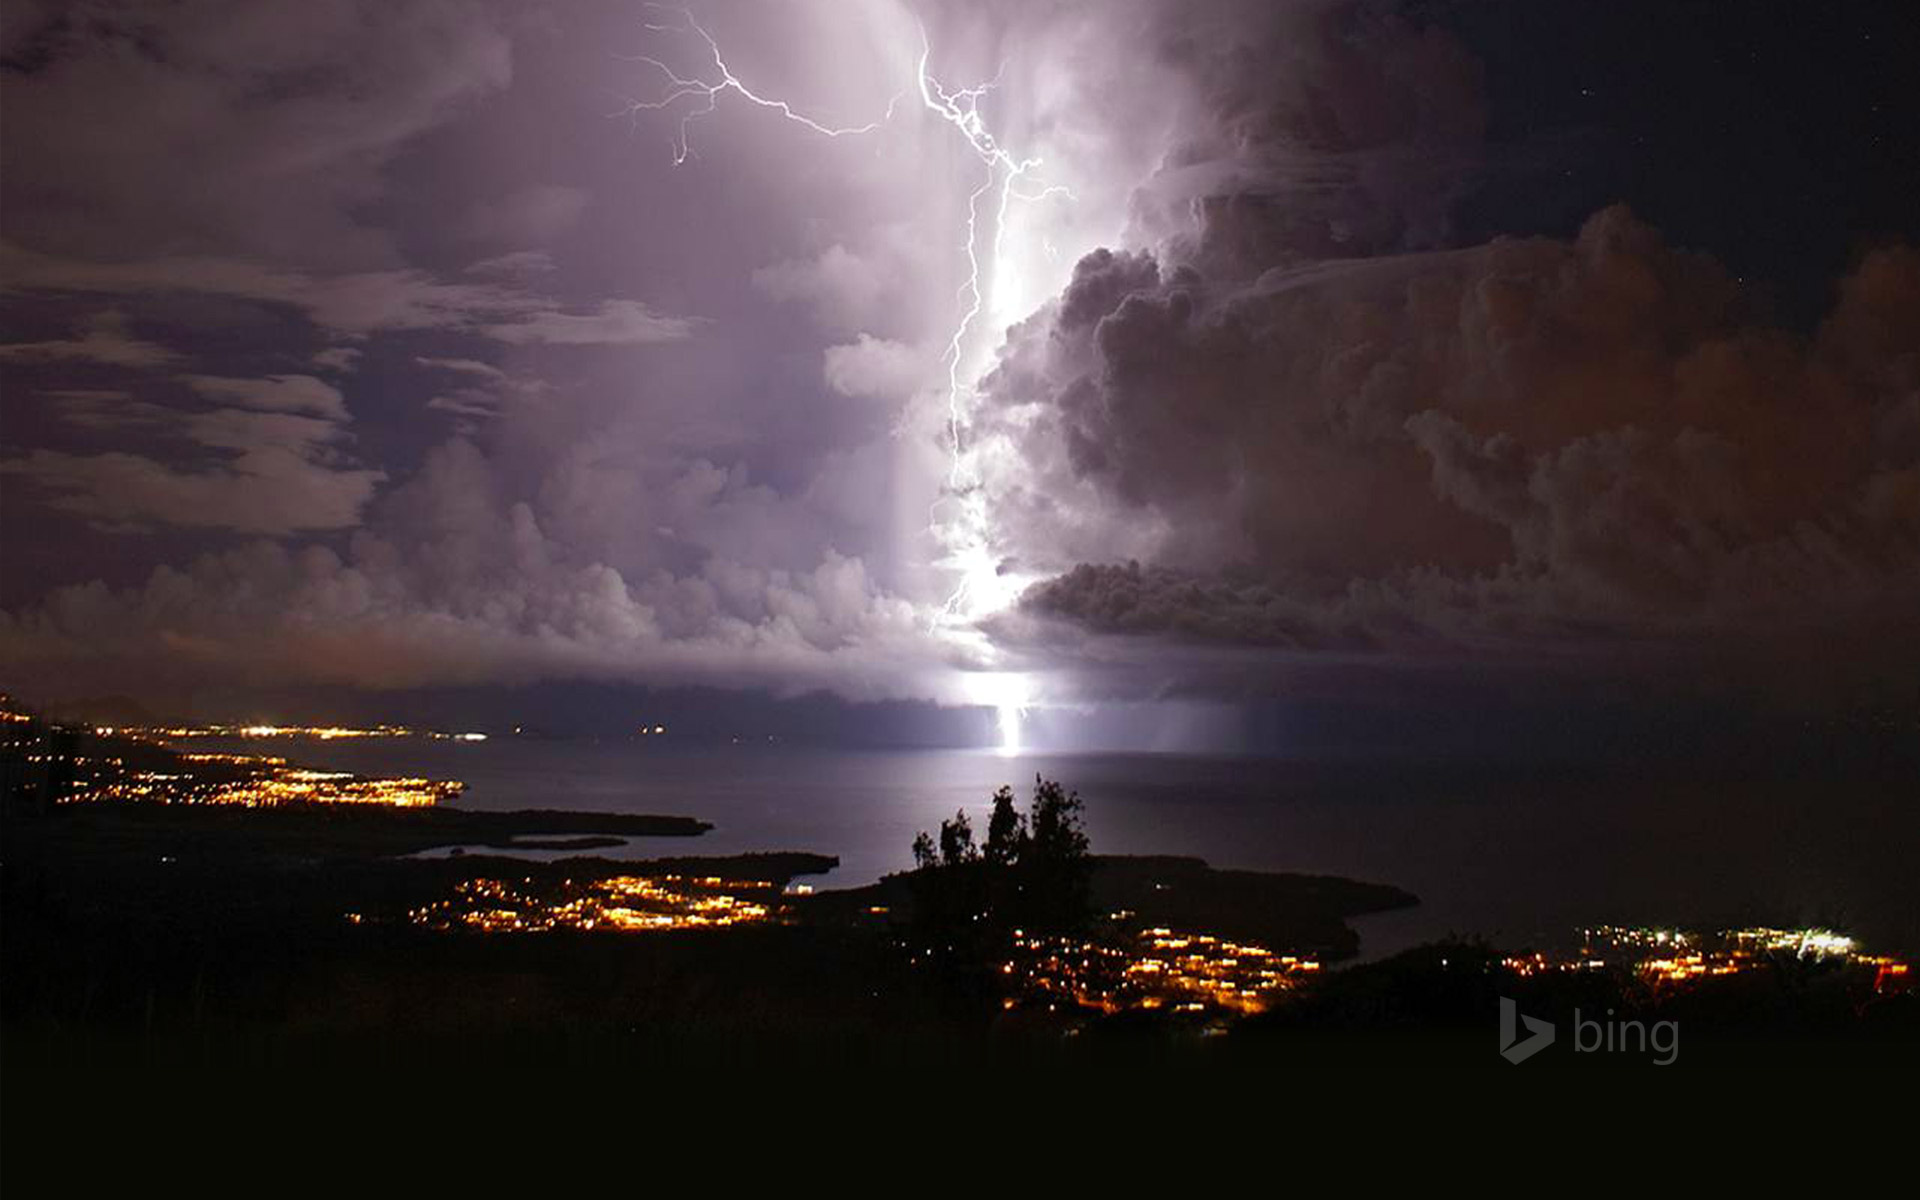 Catatumbo lightning over Zulia, Venezuela